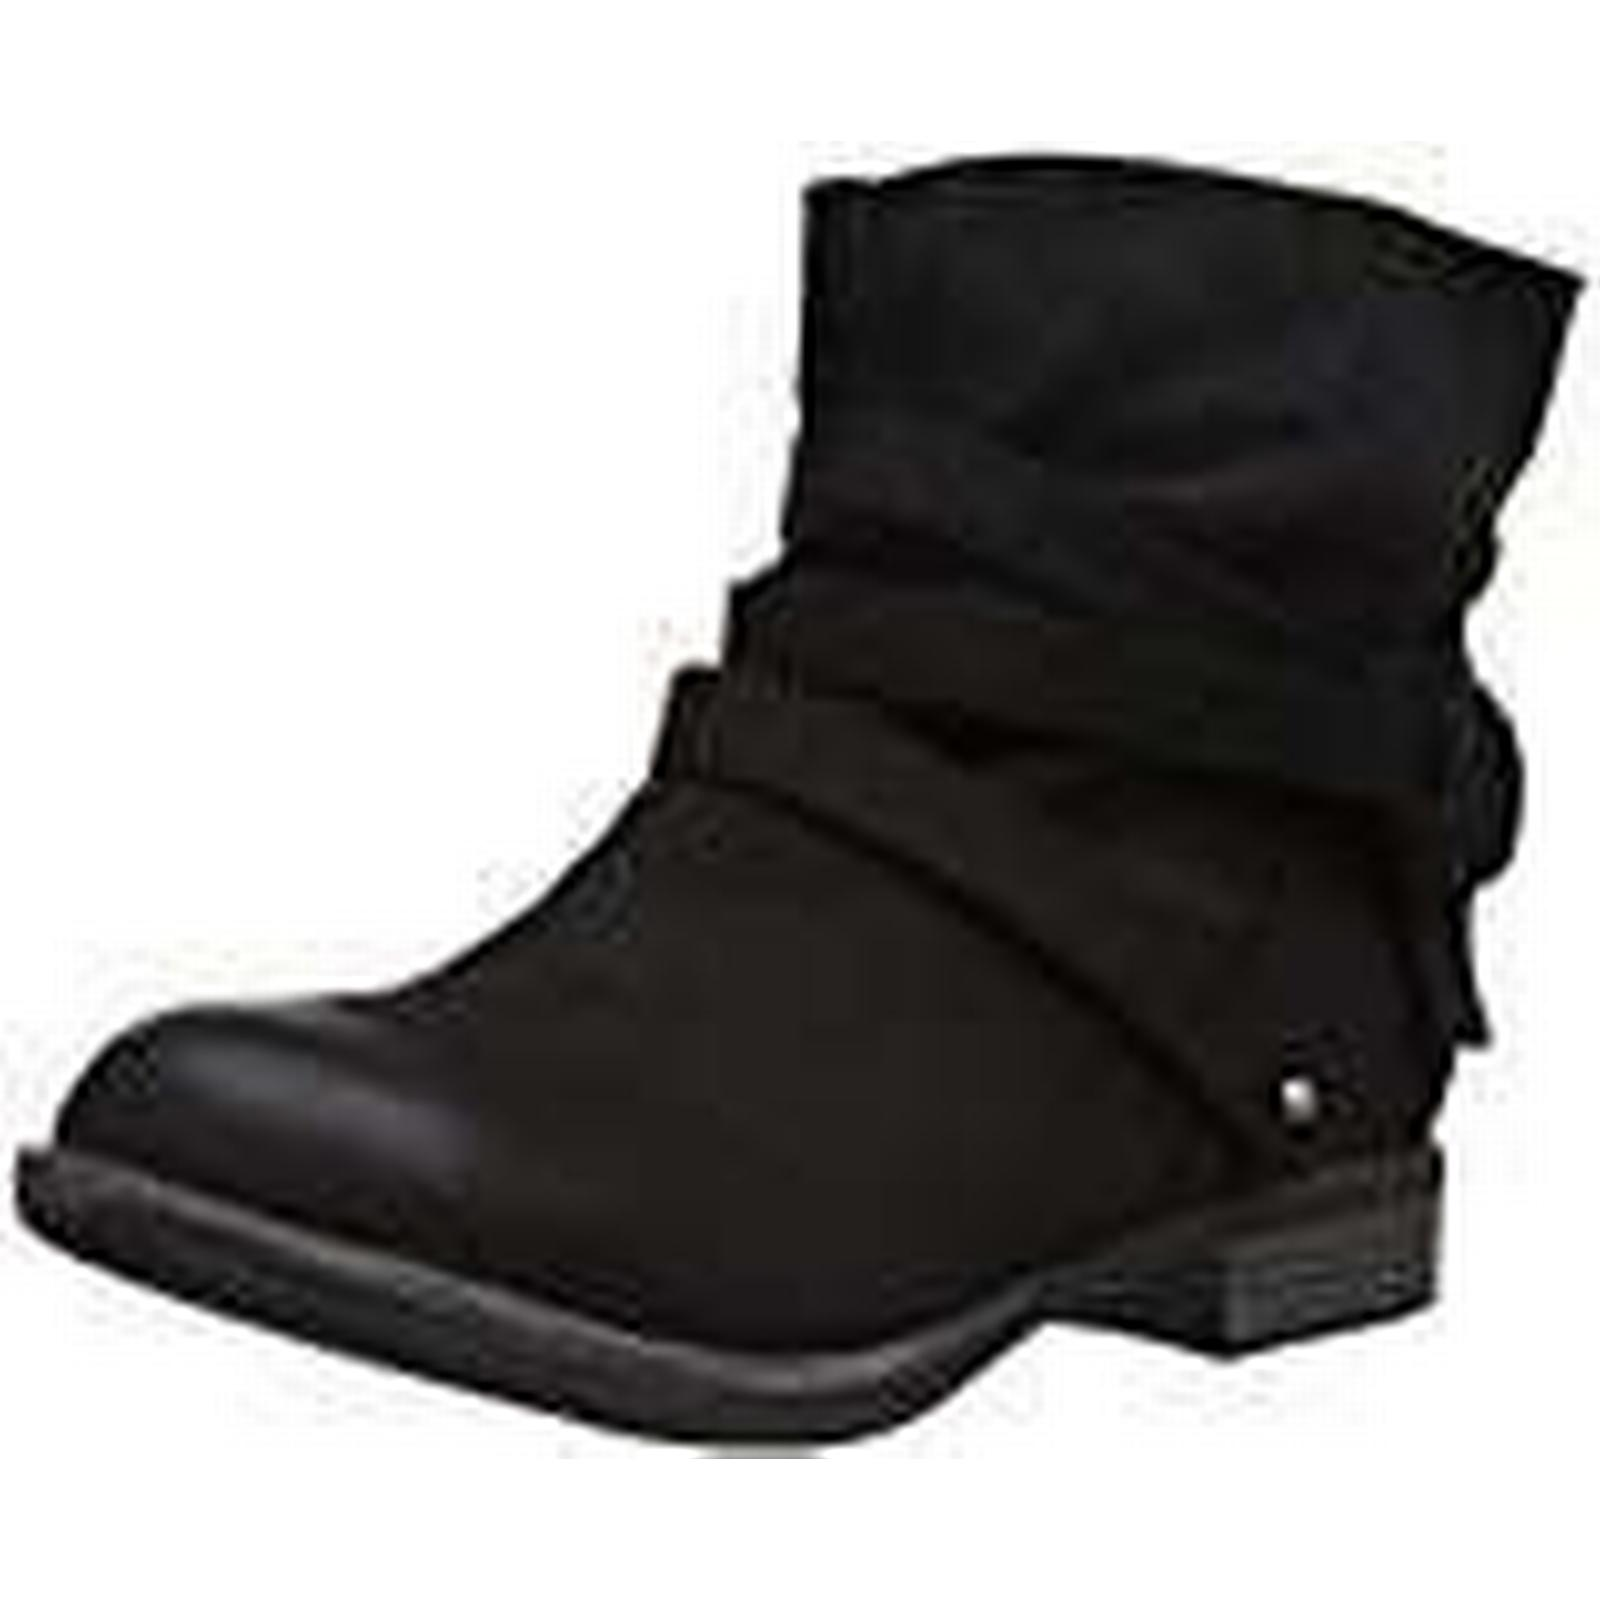 Rocket Dog Figaro Women's Ankle UK Boots - Black, 3 UK Ankle c601a5